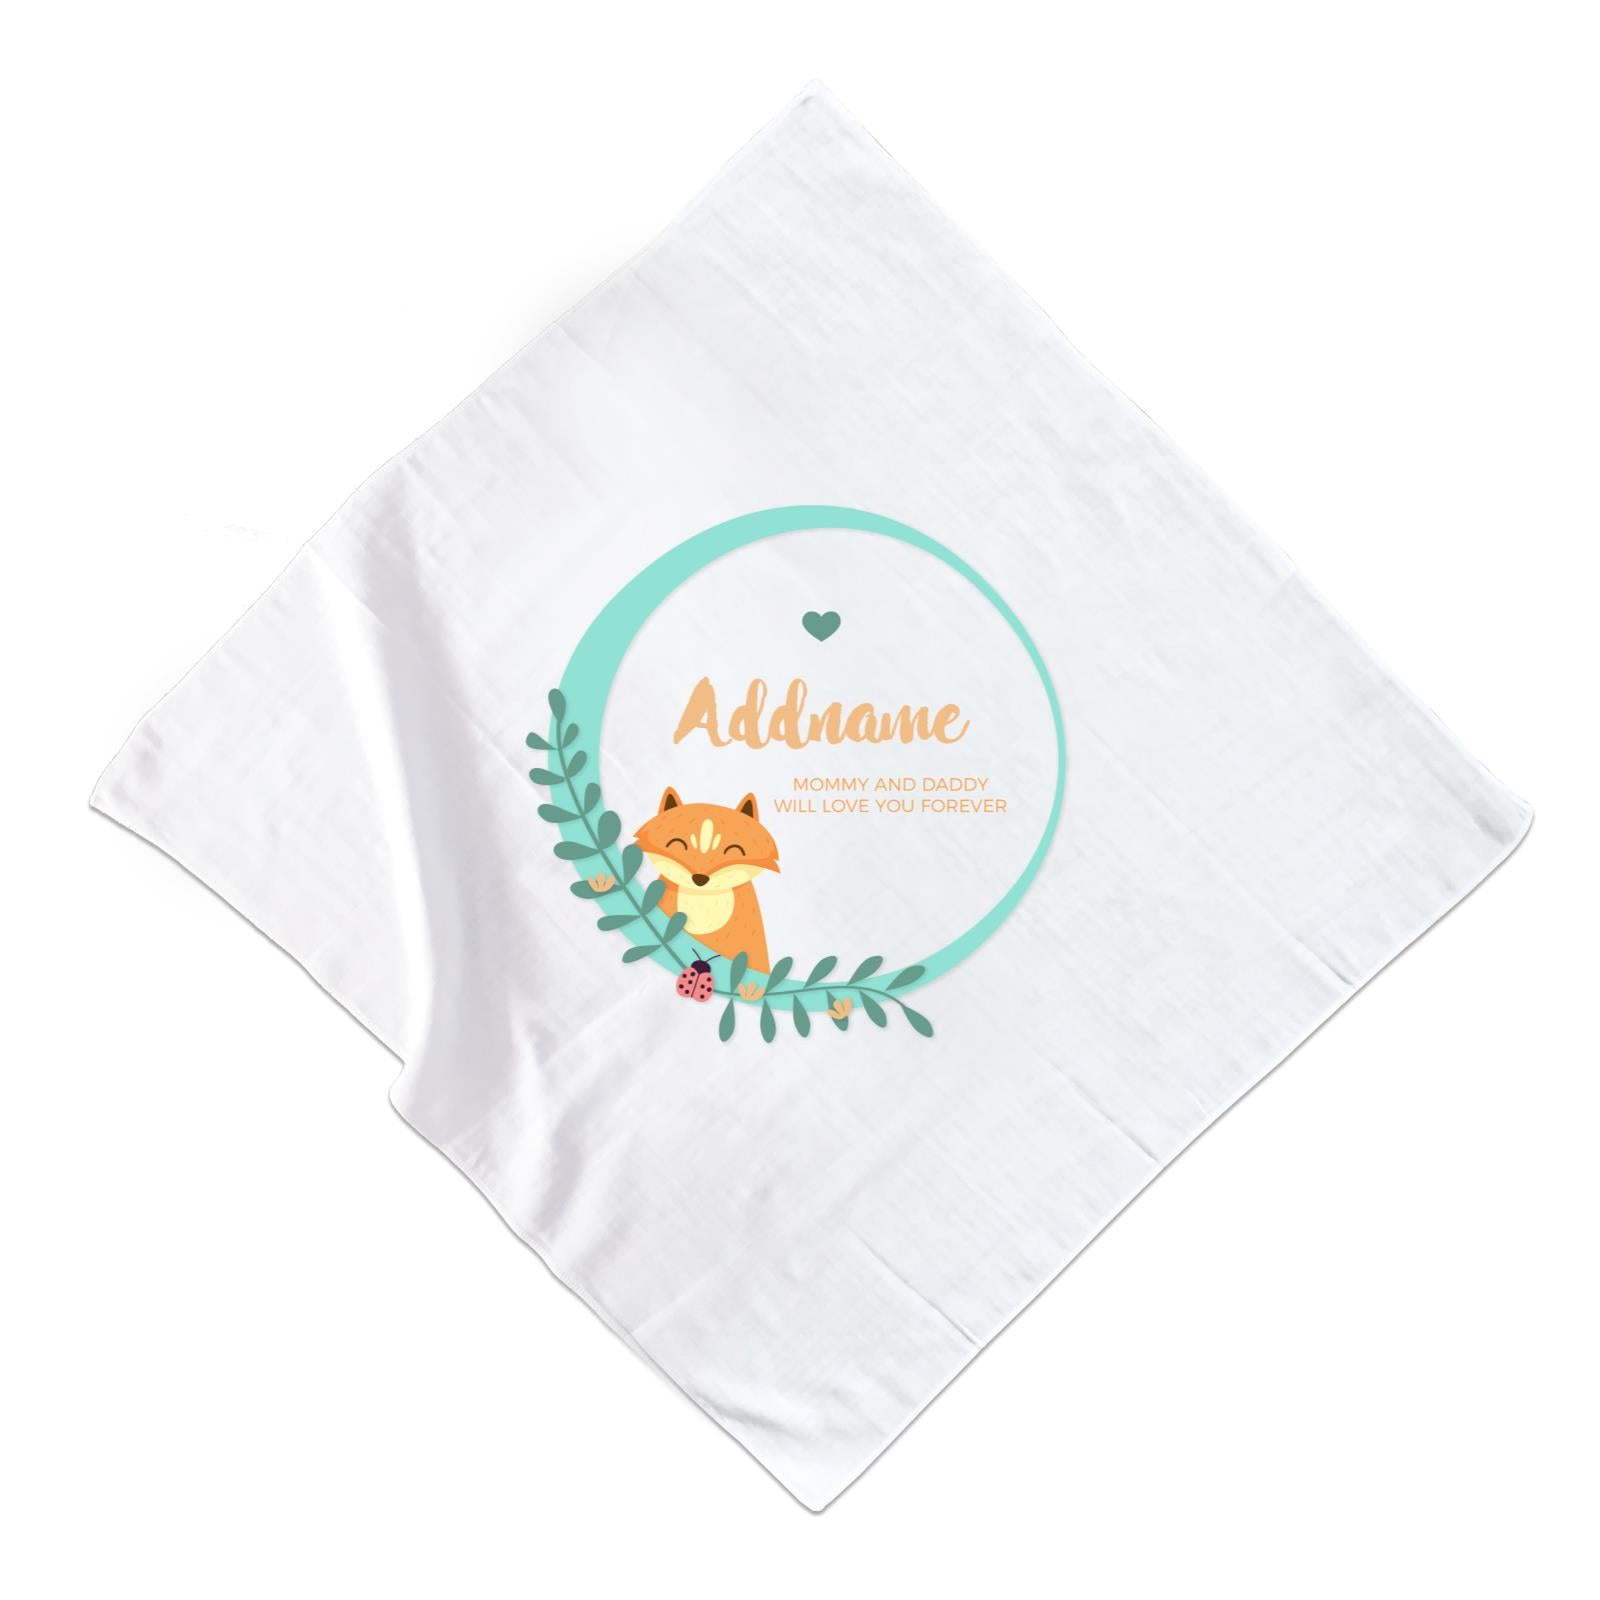 Cute Brown Fox in Turqoise Ring Personalizable with Name and Text Muslin Square